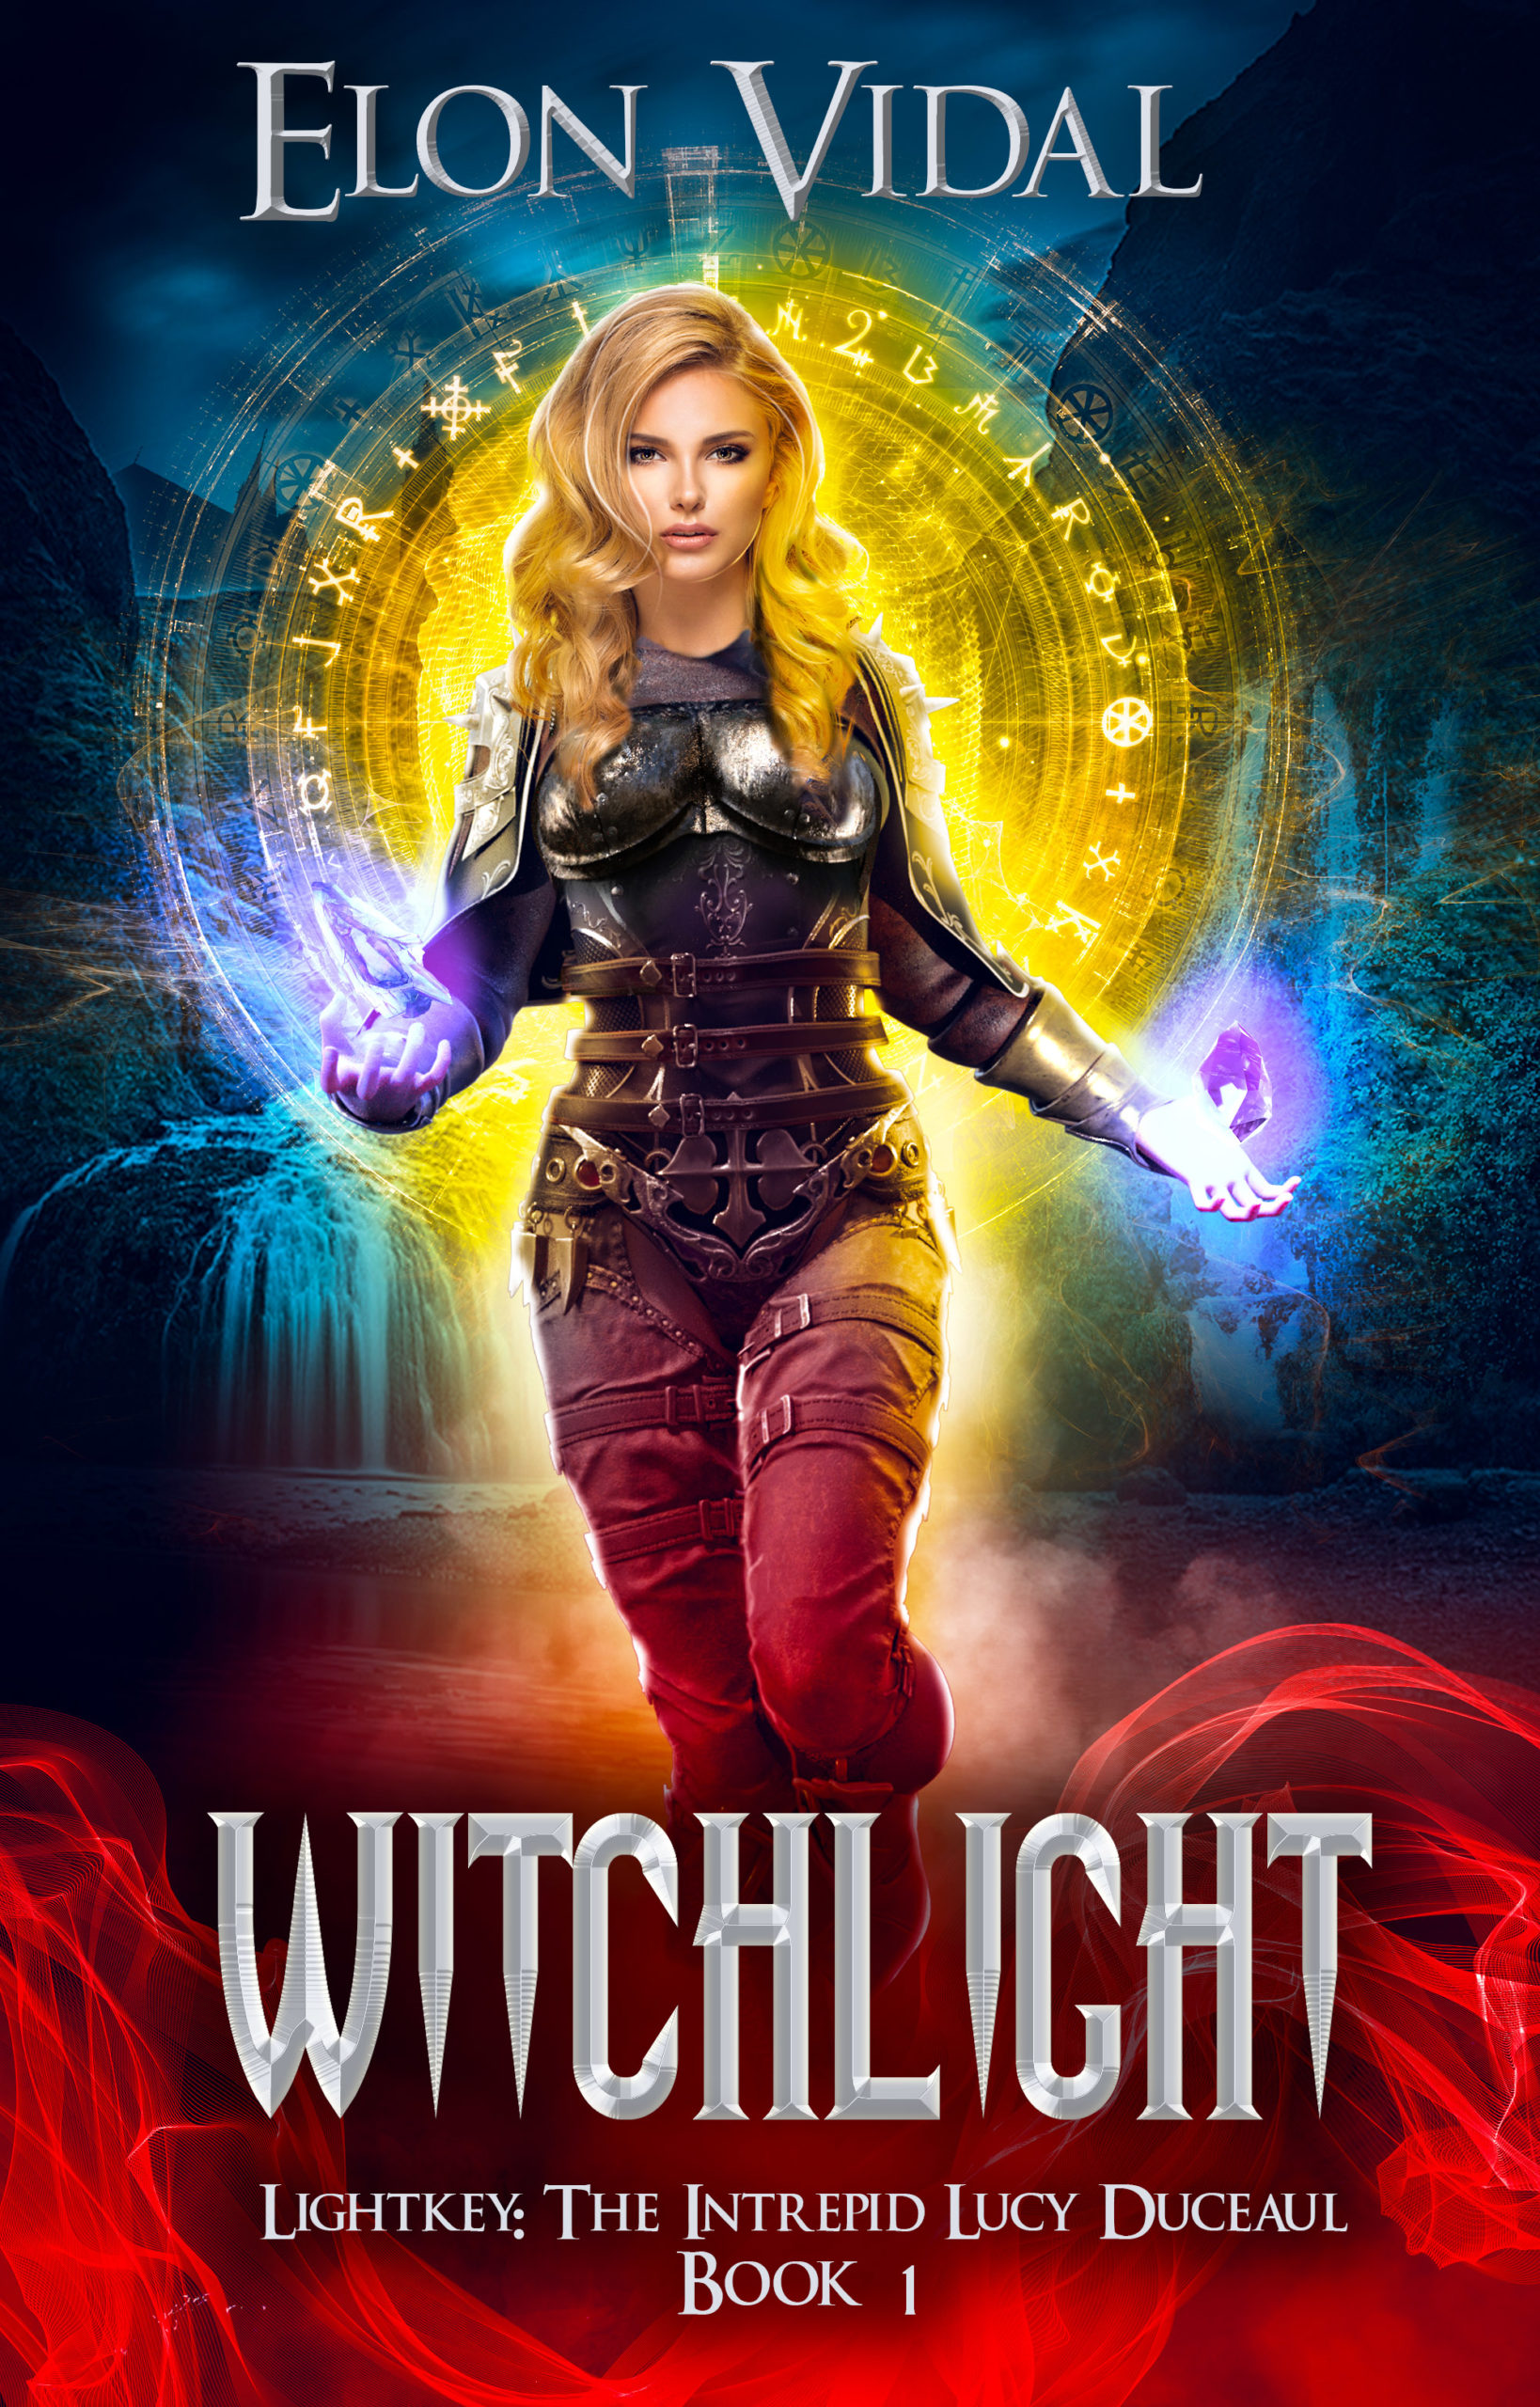 Witchlight-cover.jpg